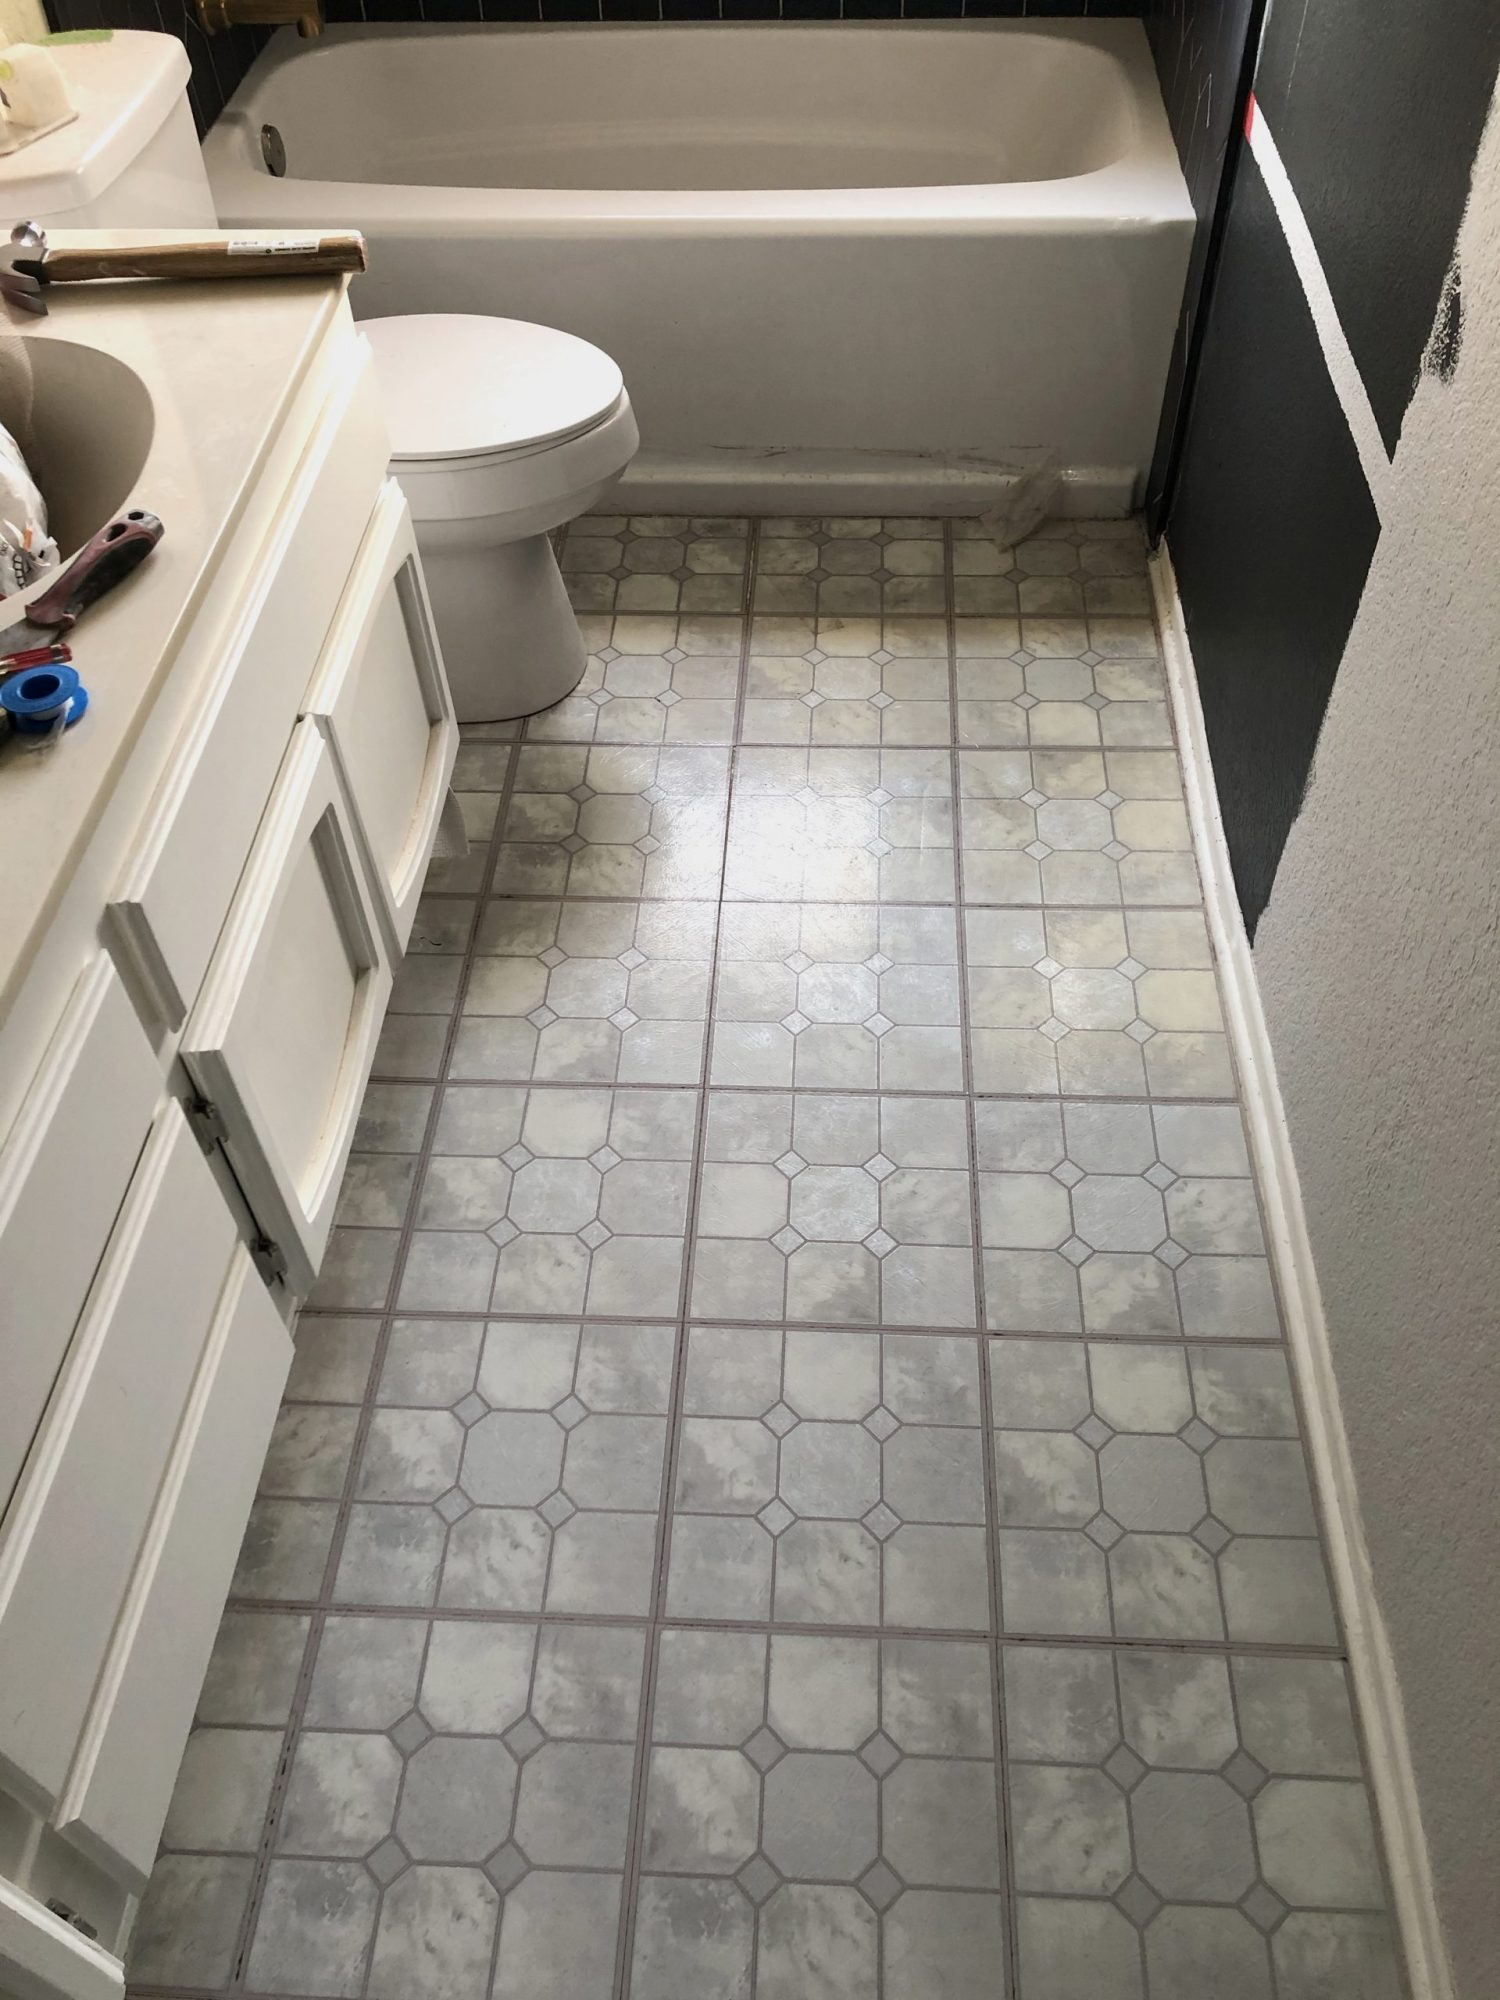 Before image of bathroom before DIY floor tile installation